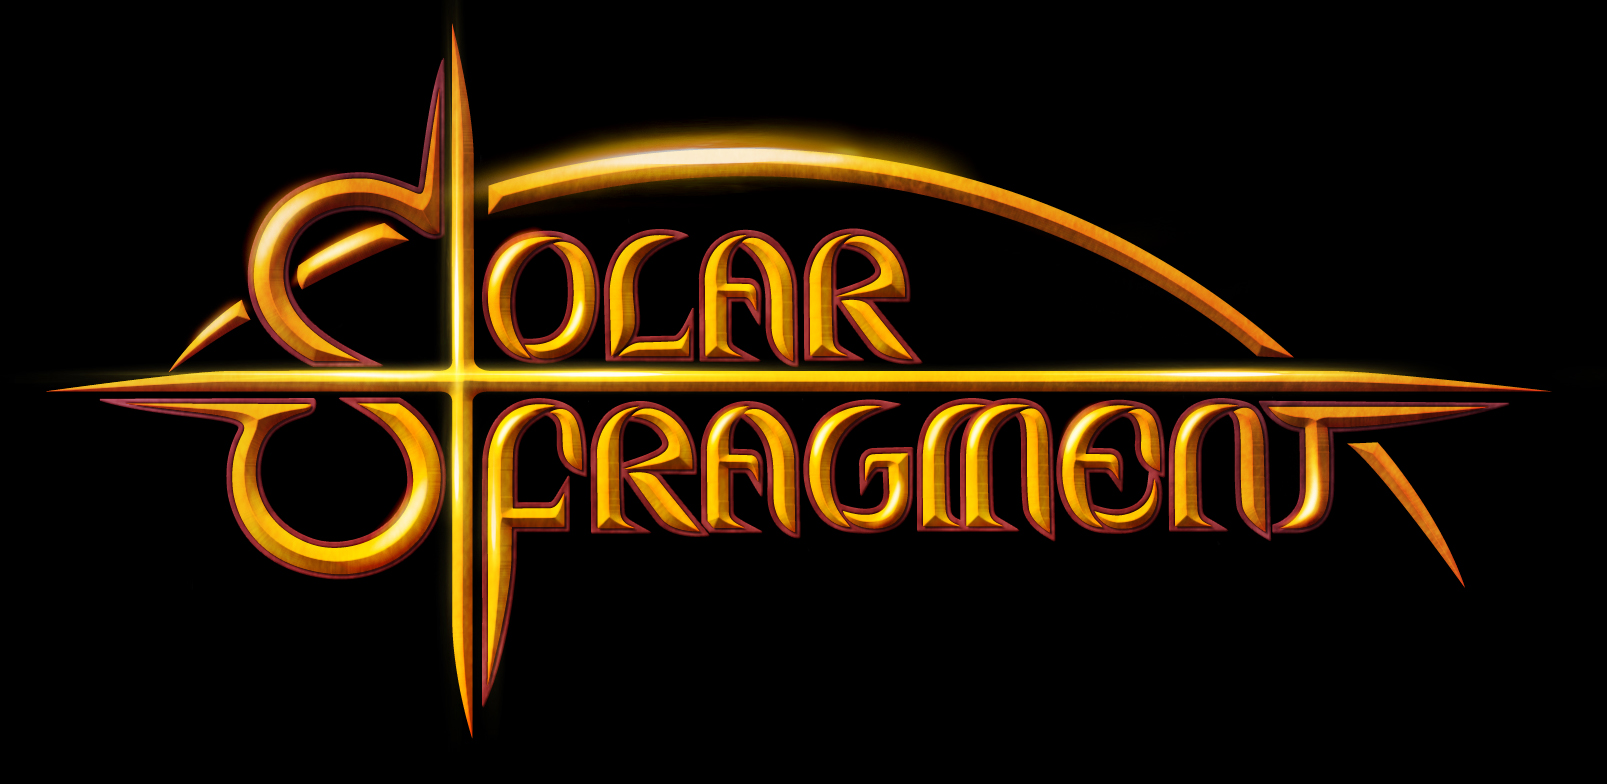 solar_fragment__logo_(black_background)